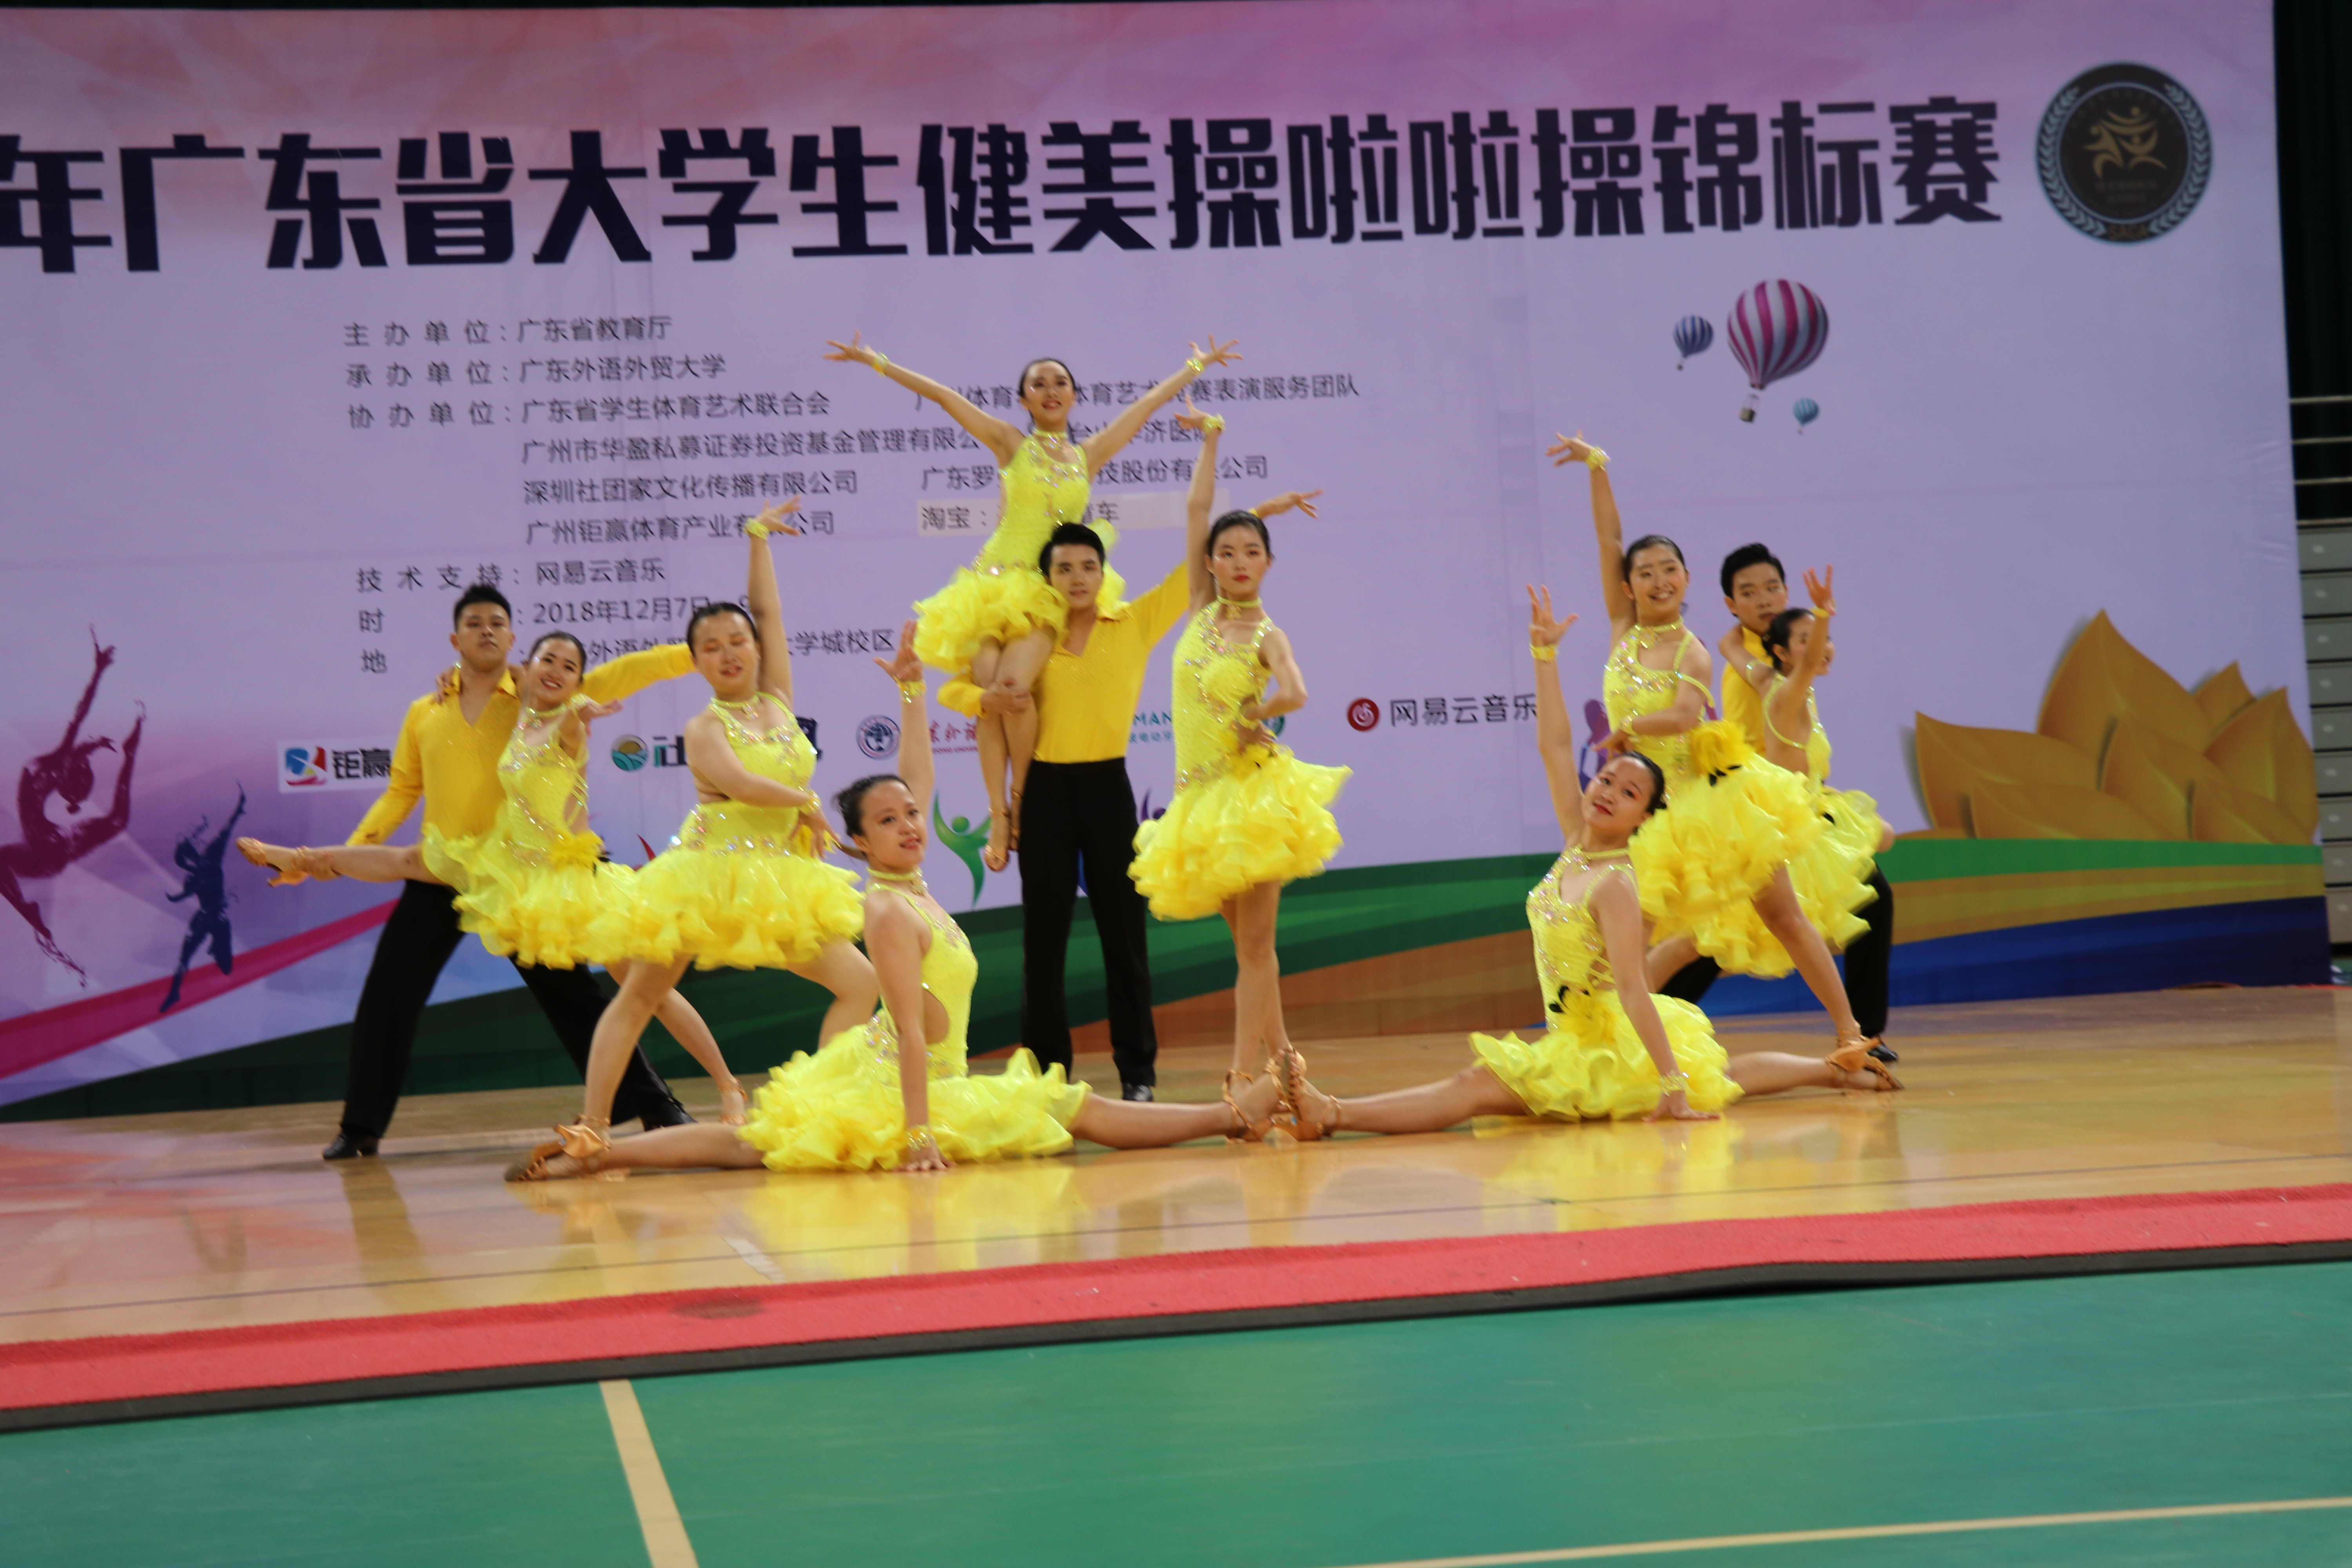 SUSTech students medal in 2018 Guangdong University Students Aerobics Cheerleading Championship